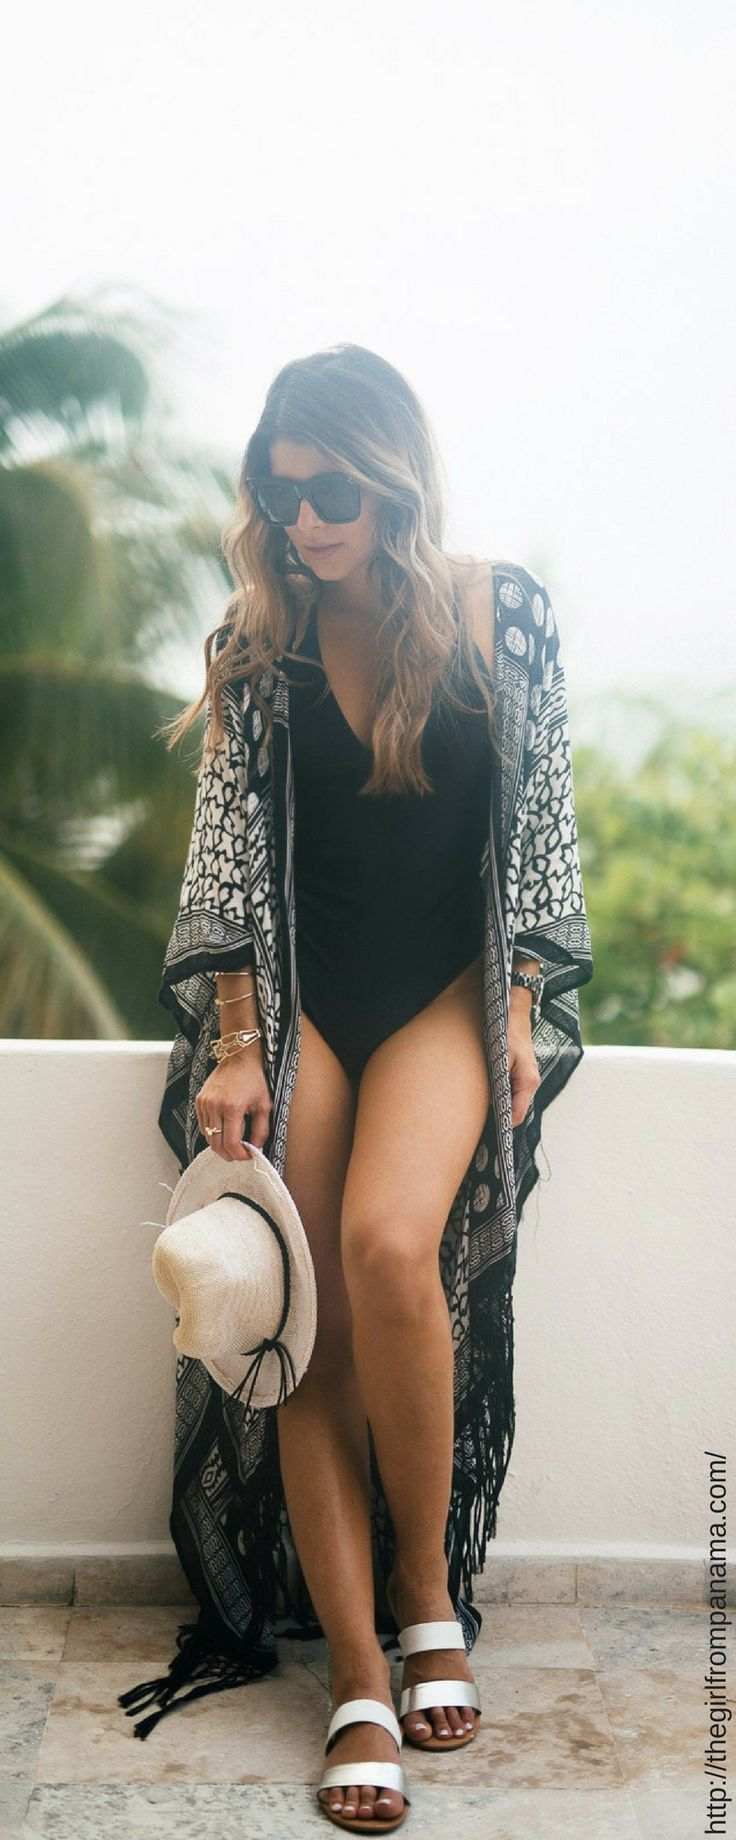 Insanely Flattering One-Piece Swimsuits Under $50 - Looking for the perfect one-piece for Spring Break or your next vacation? These simple suits will have you walking the beach in style!  Womanista.com